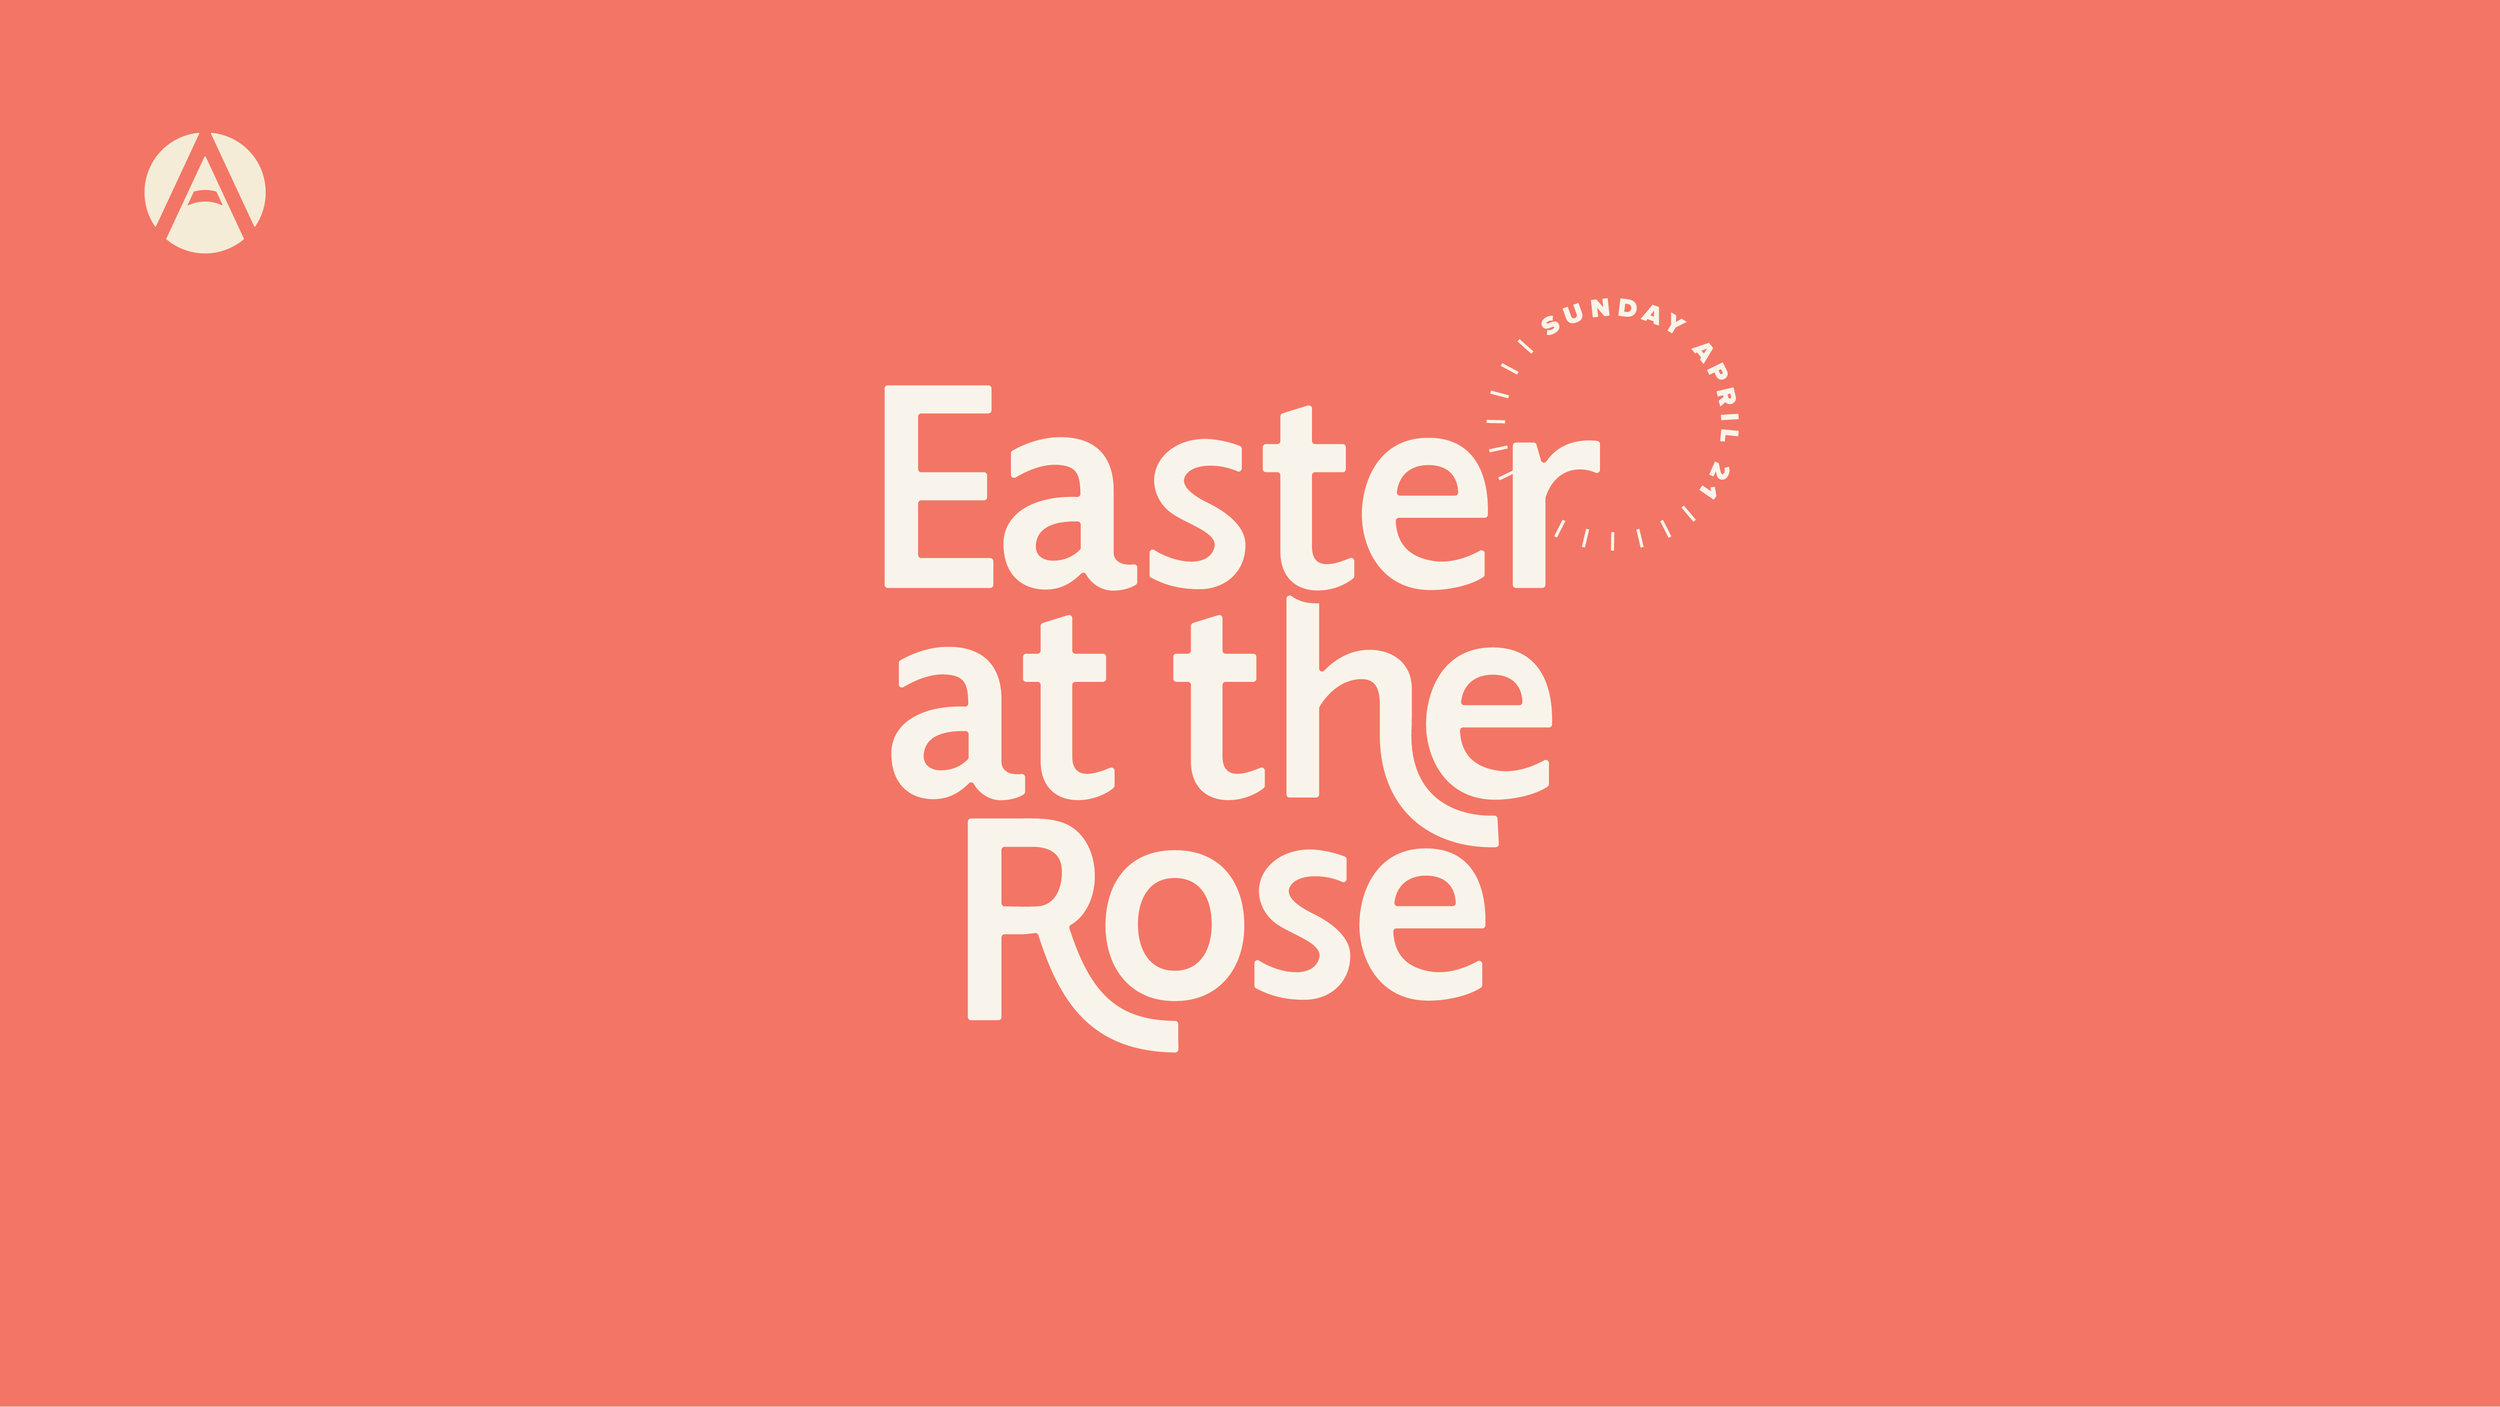 Easter at the Rose - Listen to pastor Codi Wasion's message from Easter Sunday 2019!